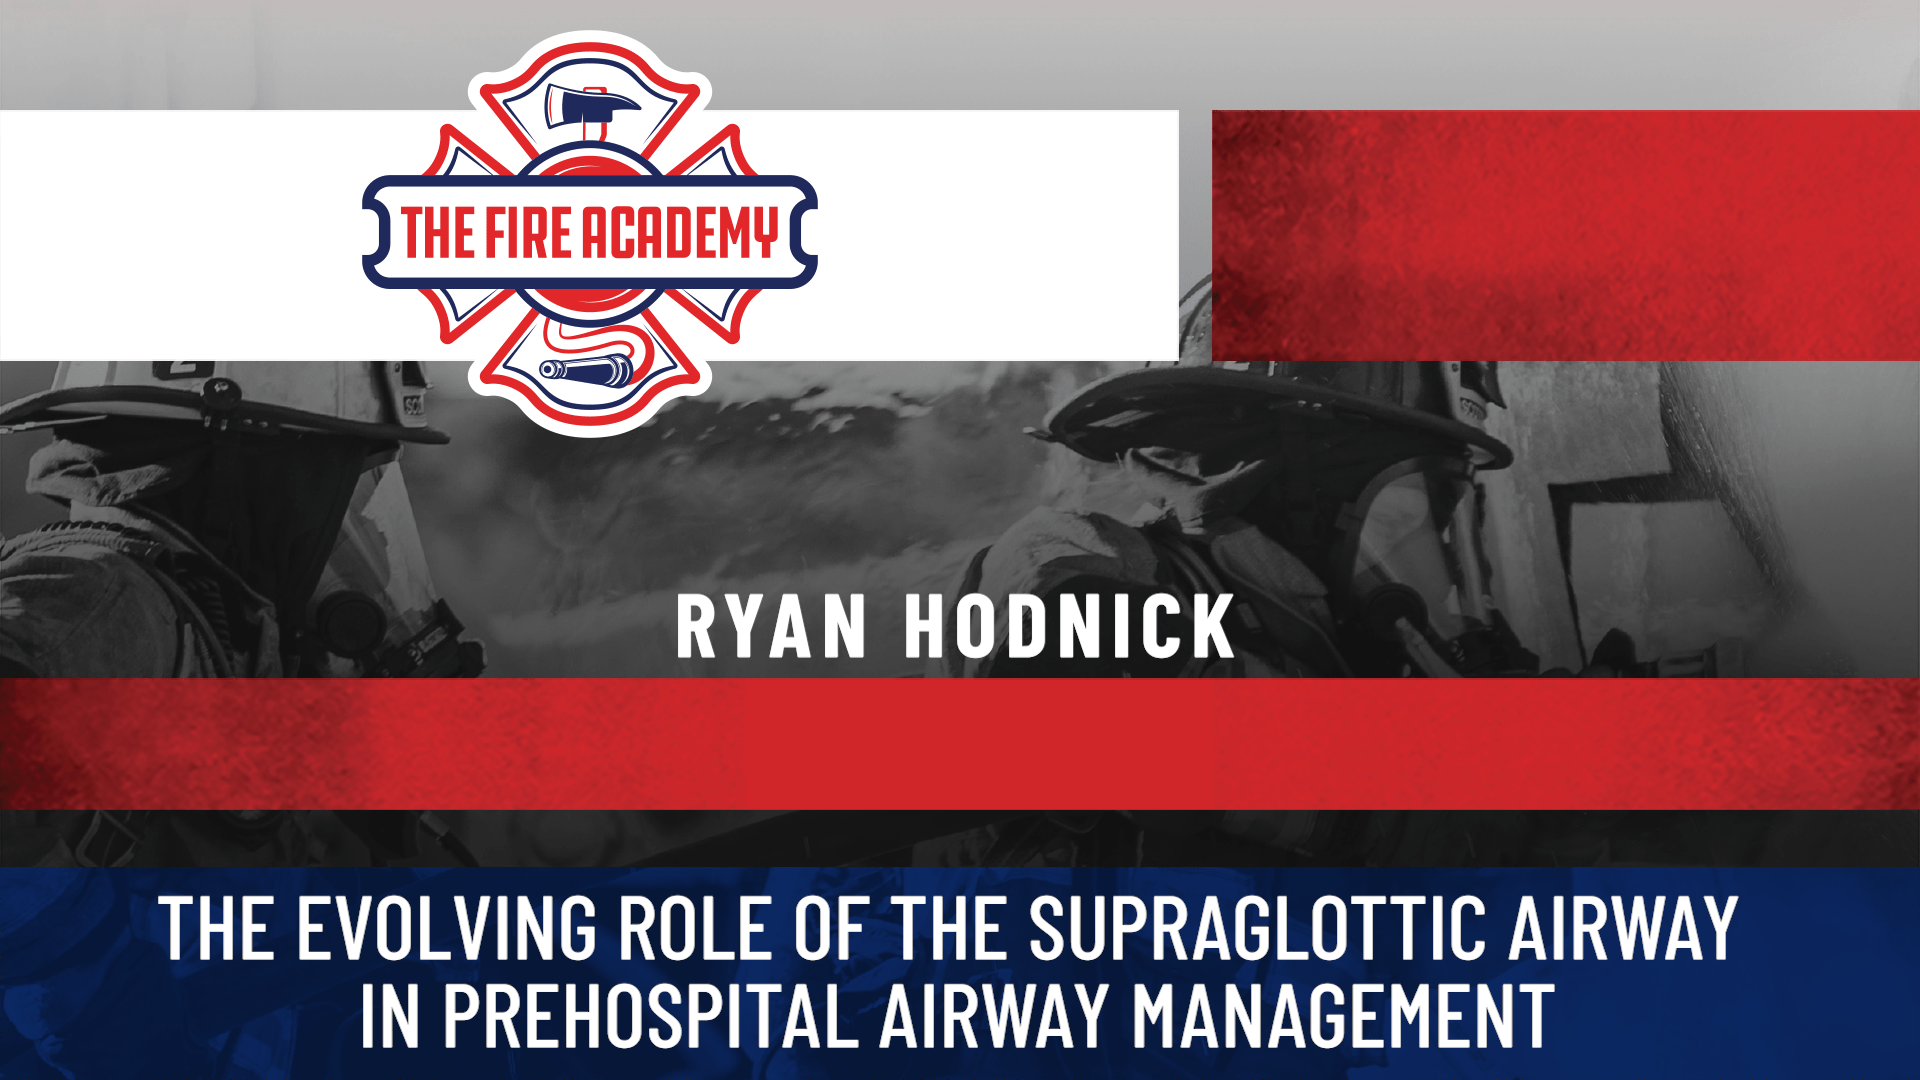 The Evolving Role of the Supraglottic Airway in Prehospital Airway Management